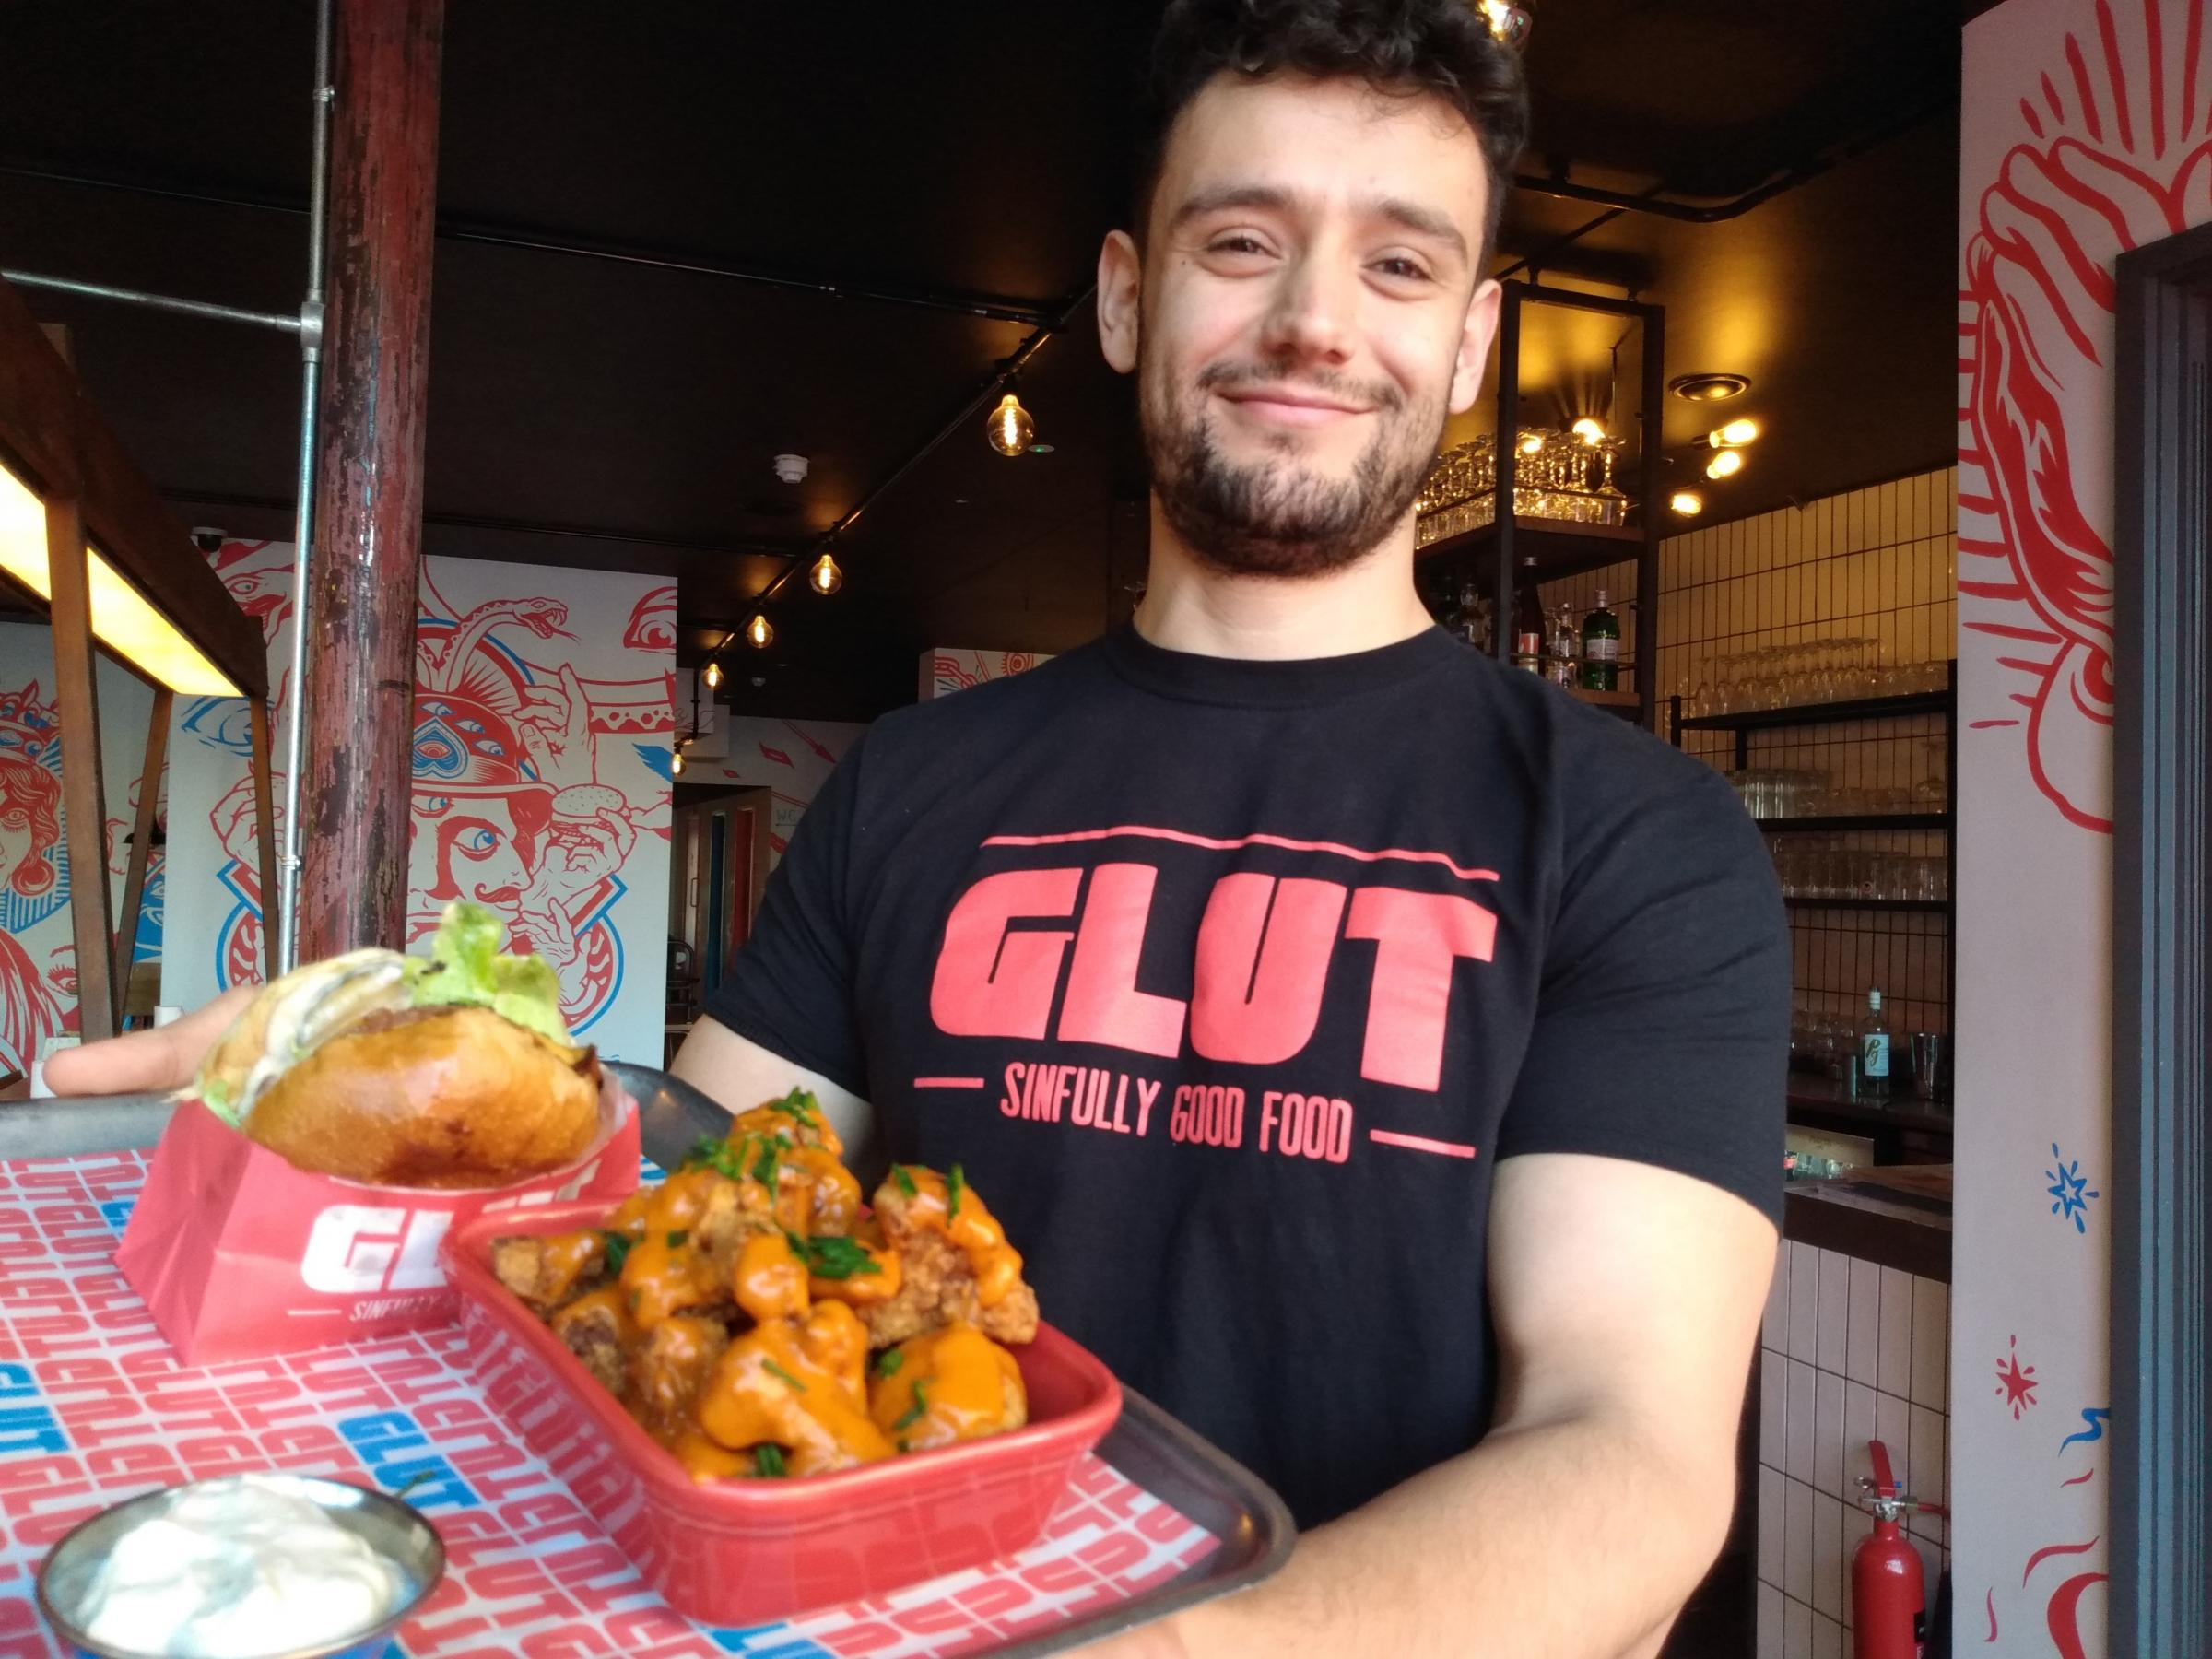 American diner Glut in Oxford gets four star food hygiene rating